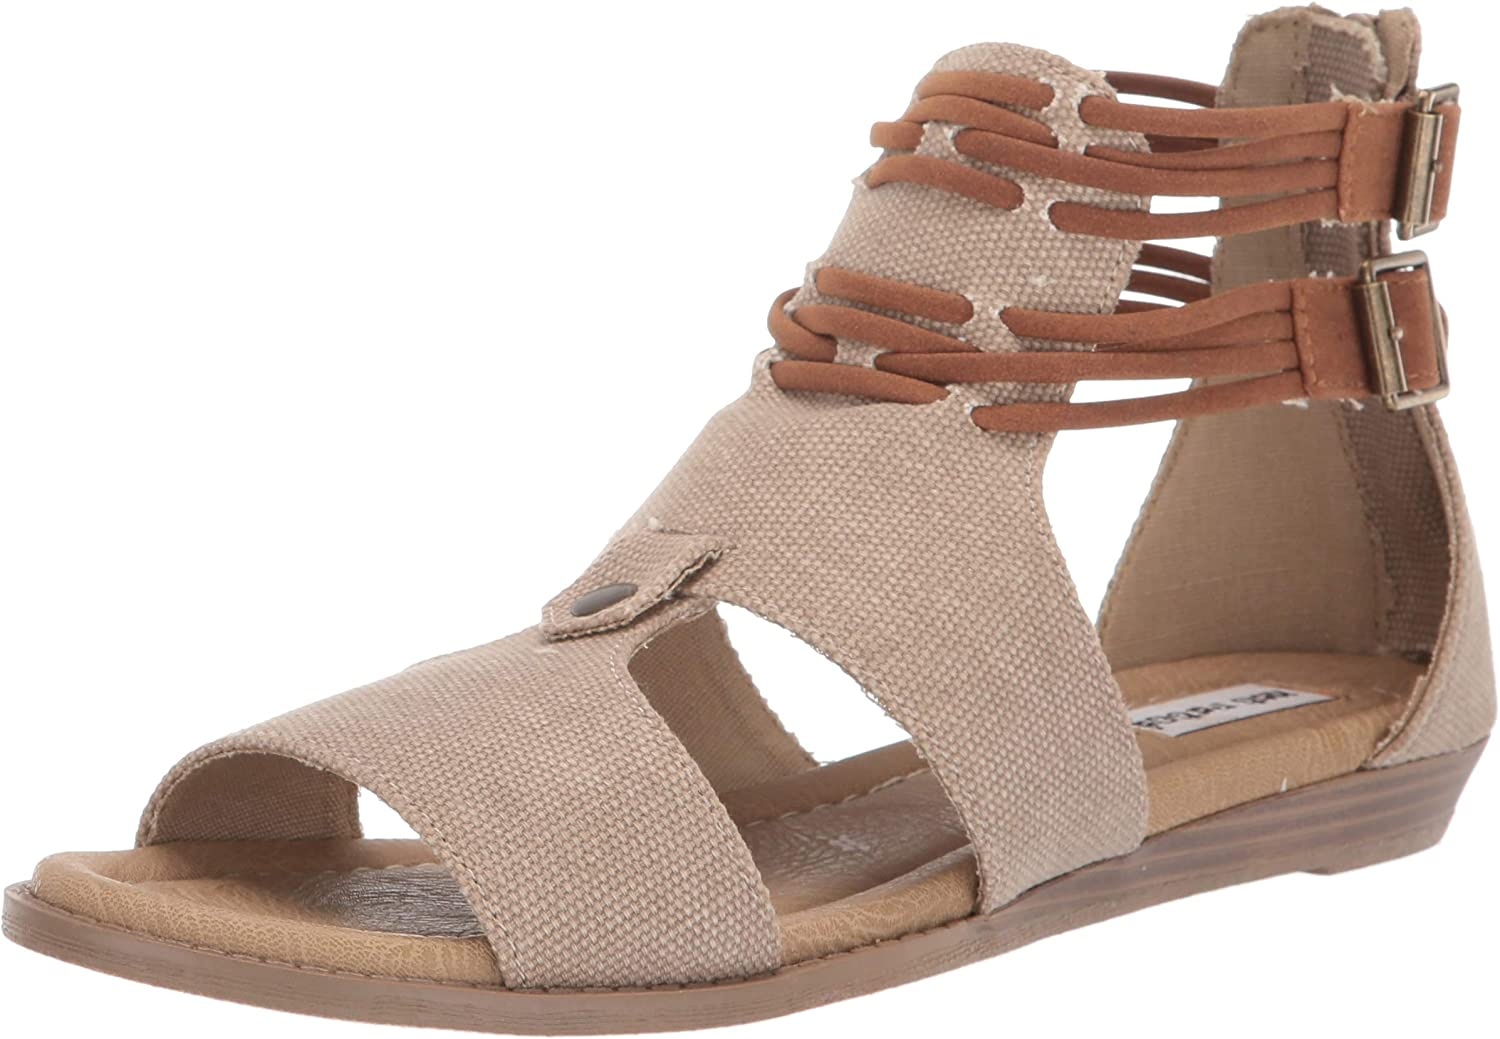 New item Not Rated Women's Max 41% OFF Eleonora